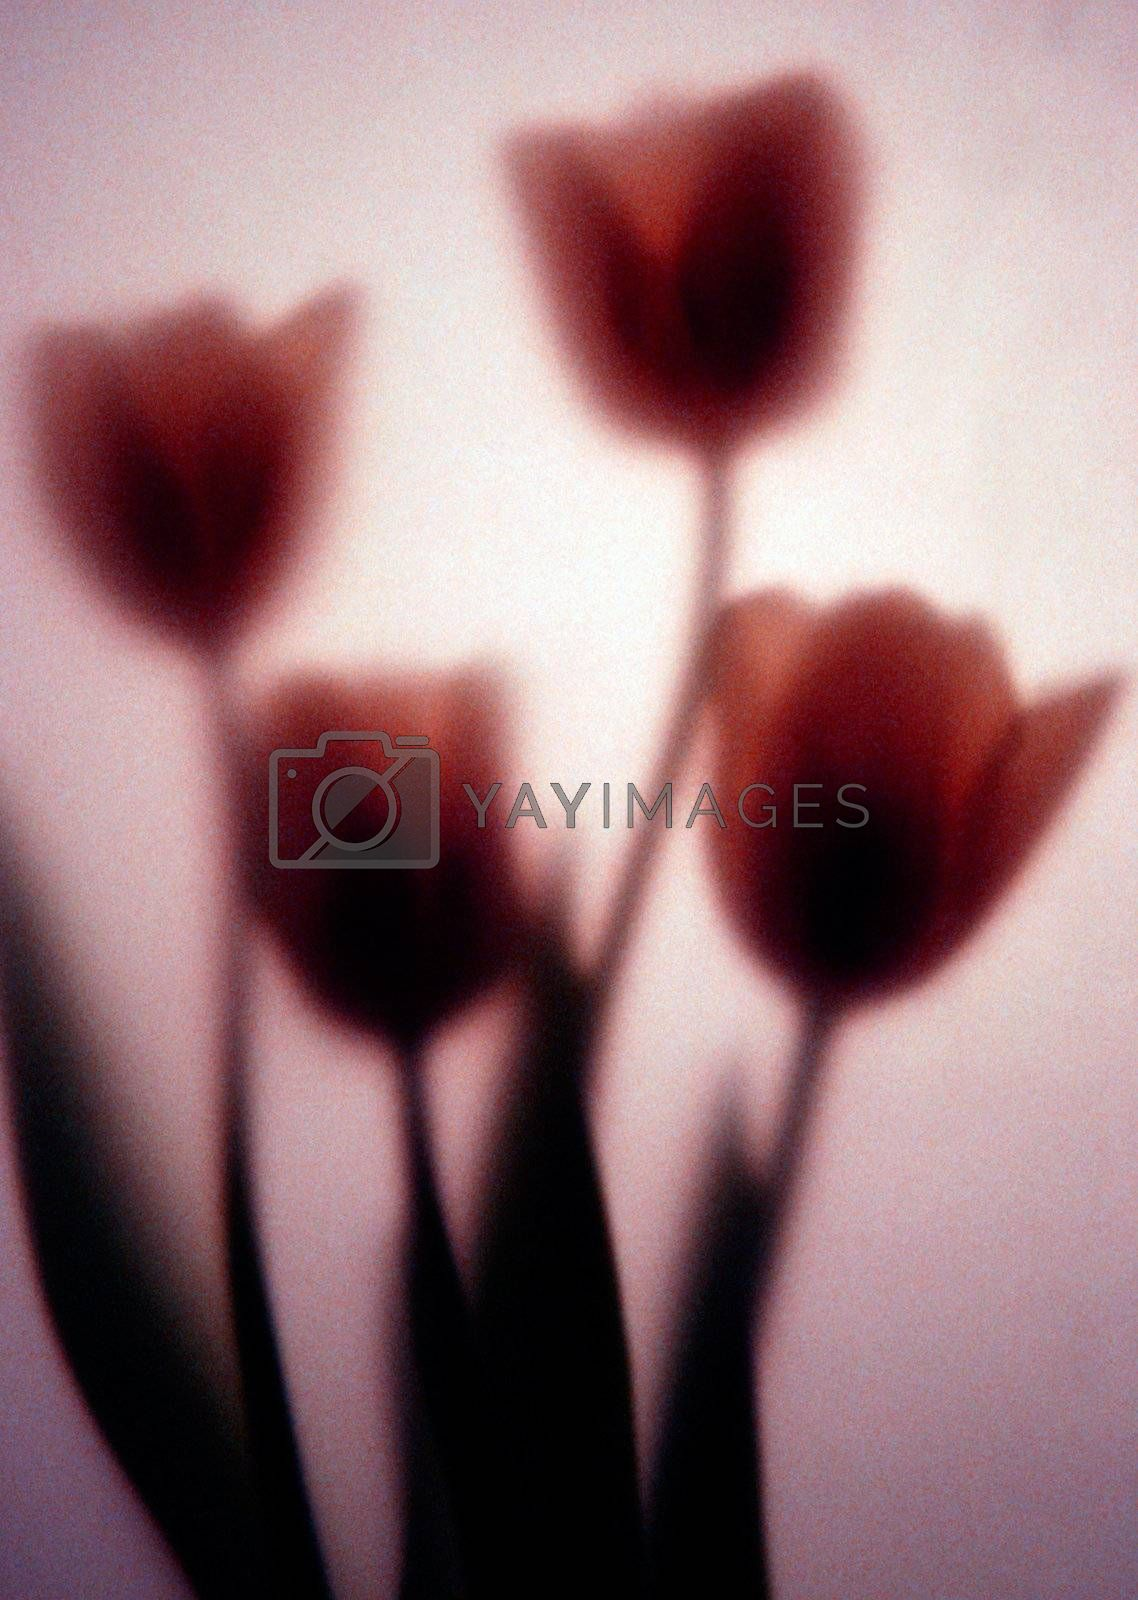 Four tulips photographed behind art paper